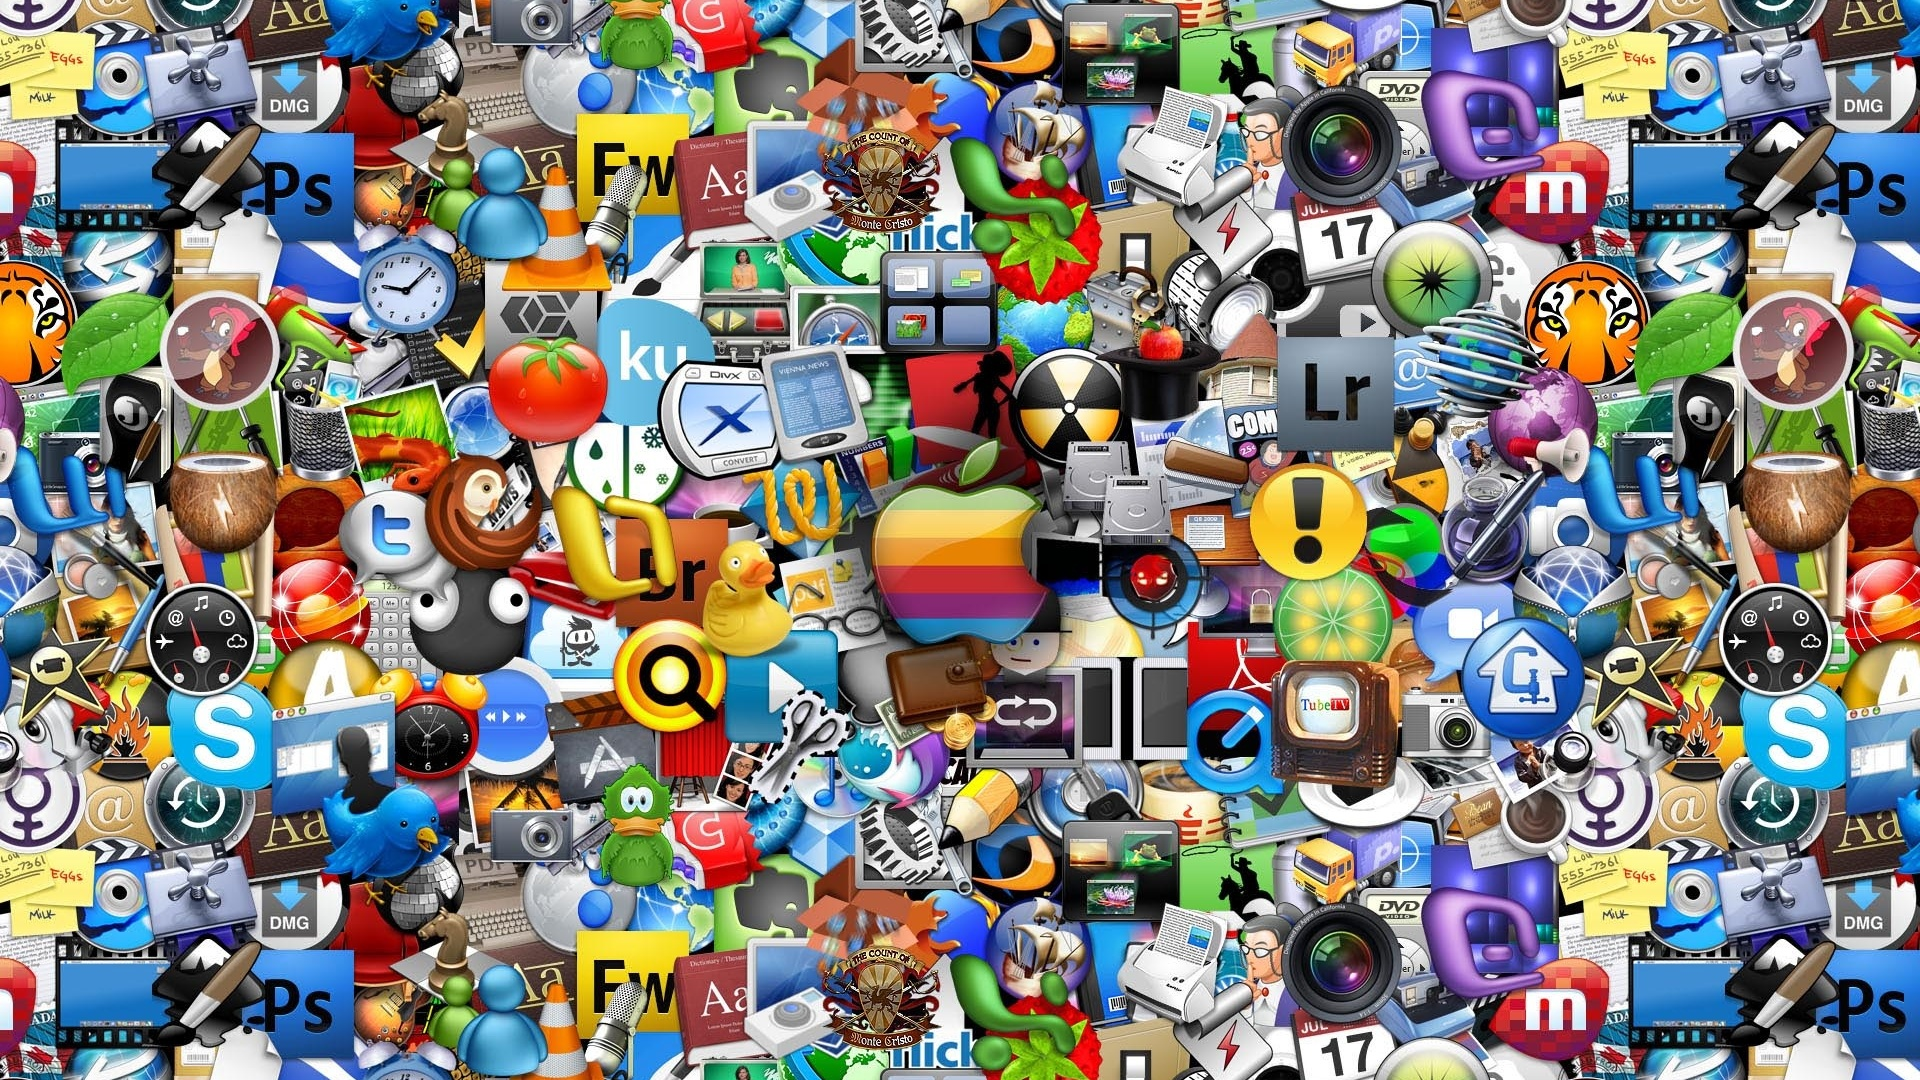 Apple Mac Icon Collage 1920x1080 wallpaper